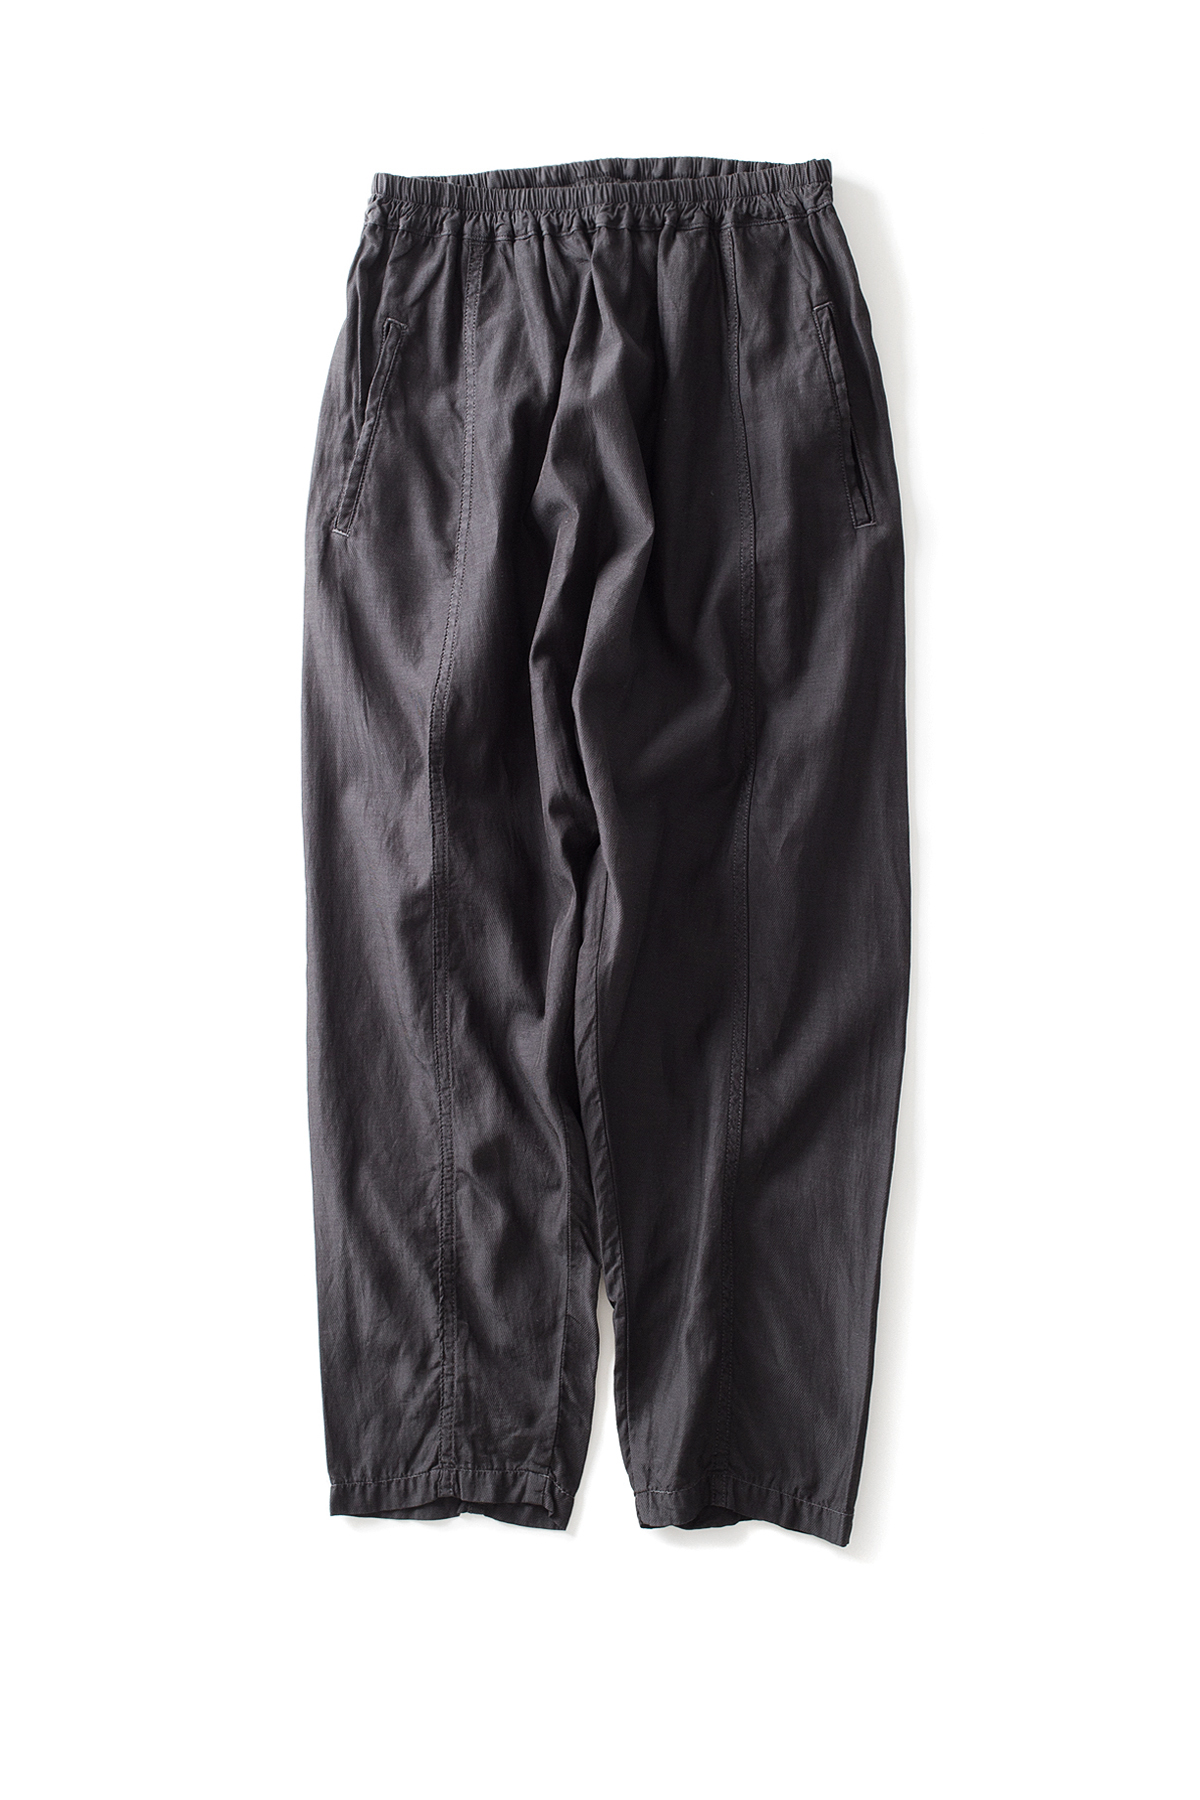 ordinary fits : Petit Ball Pants (Black)